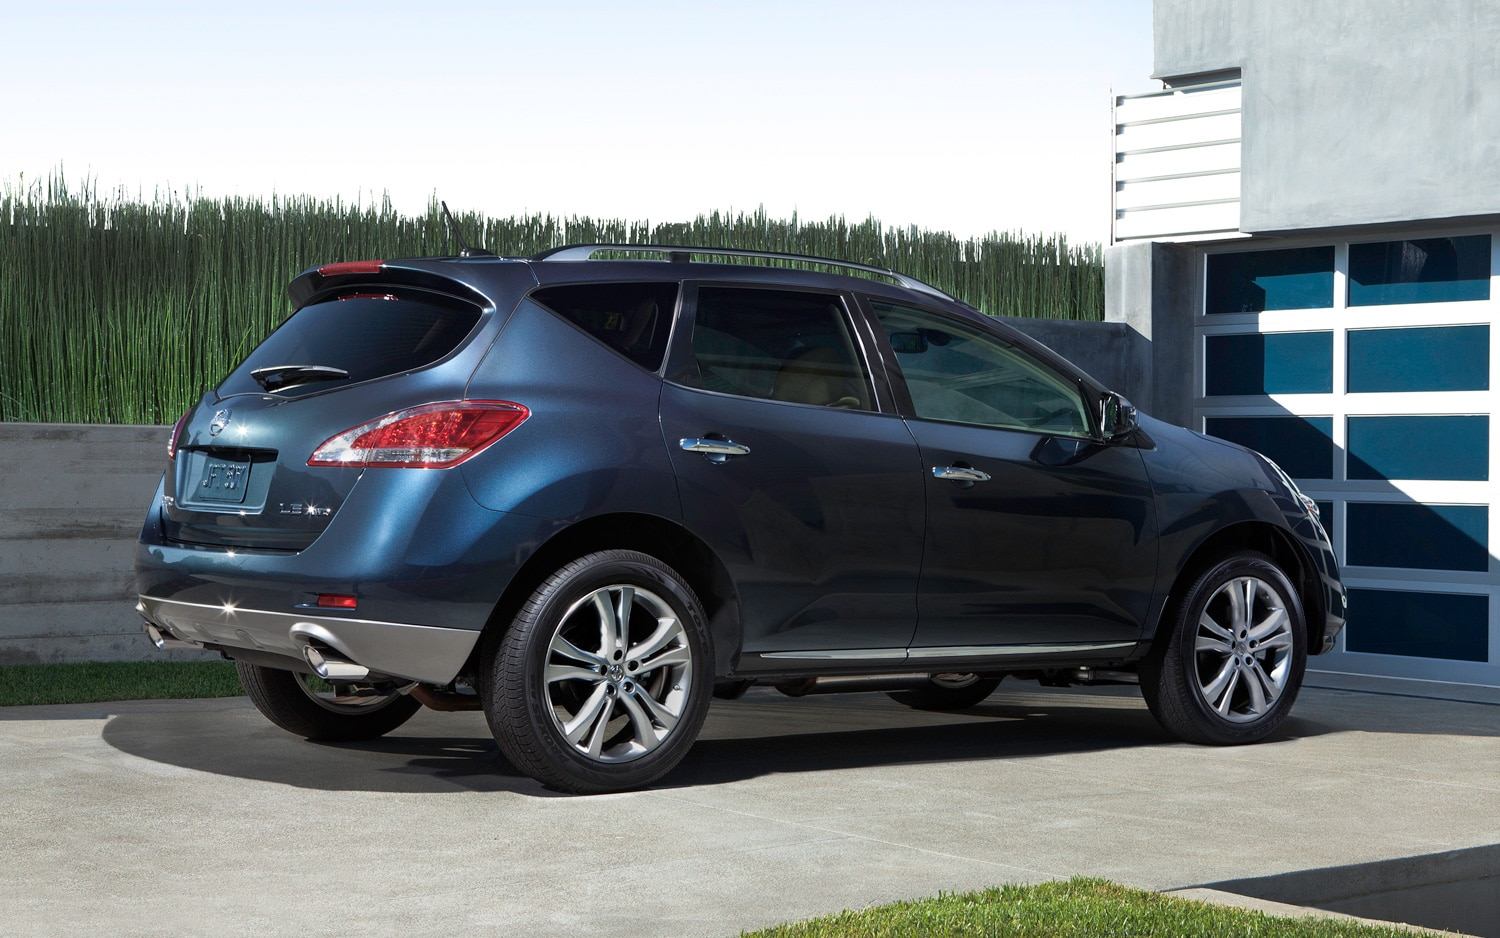 2012 nissan murano le awd editors 39 notebook automobile magazine. Black Bedroom Furniture Sets. Home Design Ideas